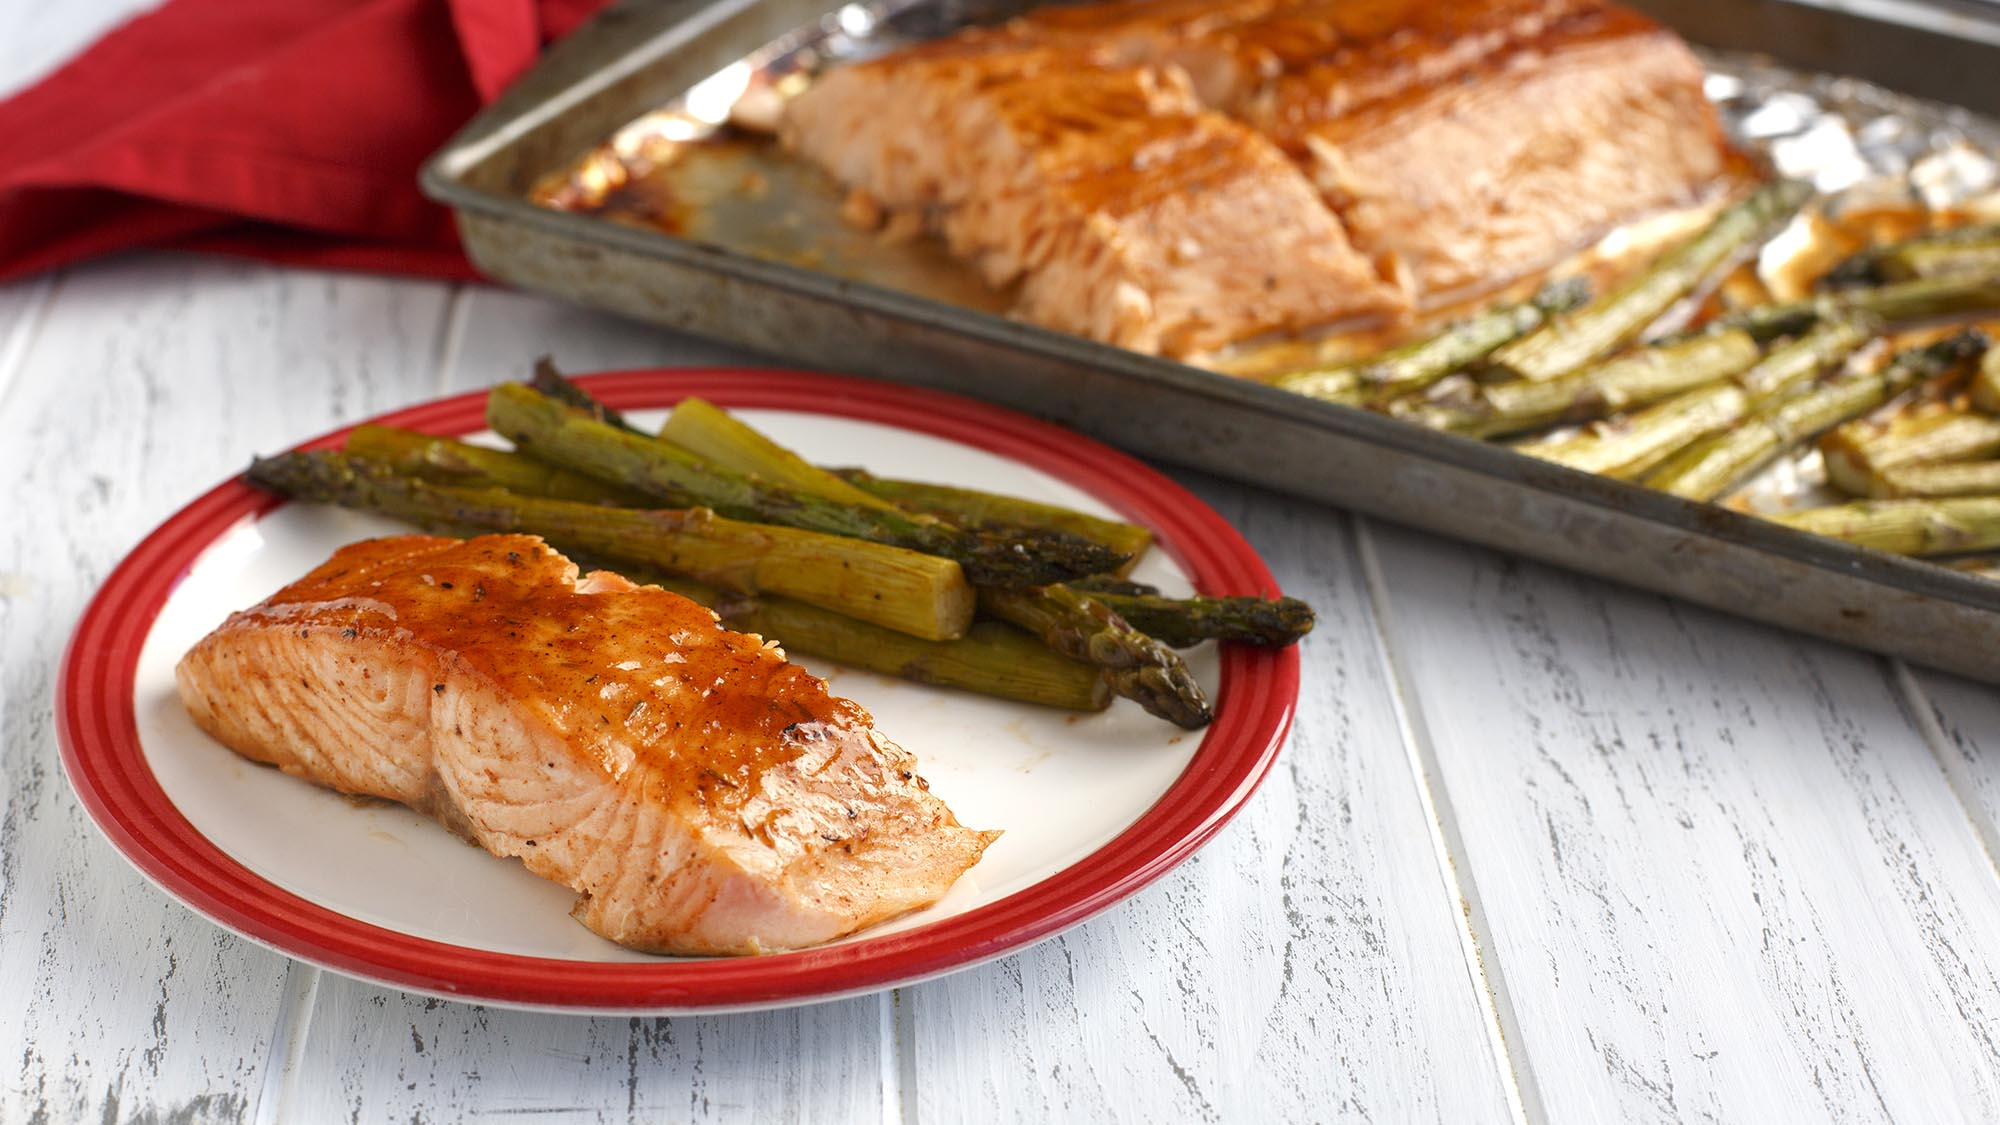 roasted_honey_bourbon_salmon_and_asparagus_2000x1125.jpg